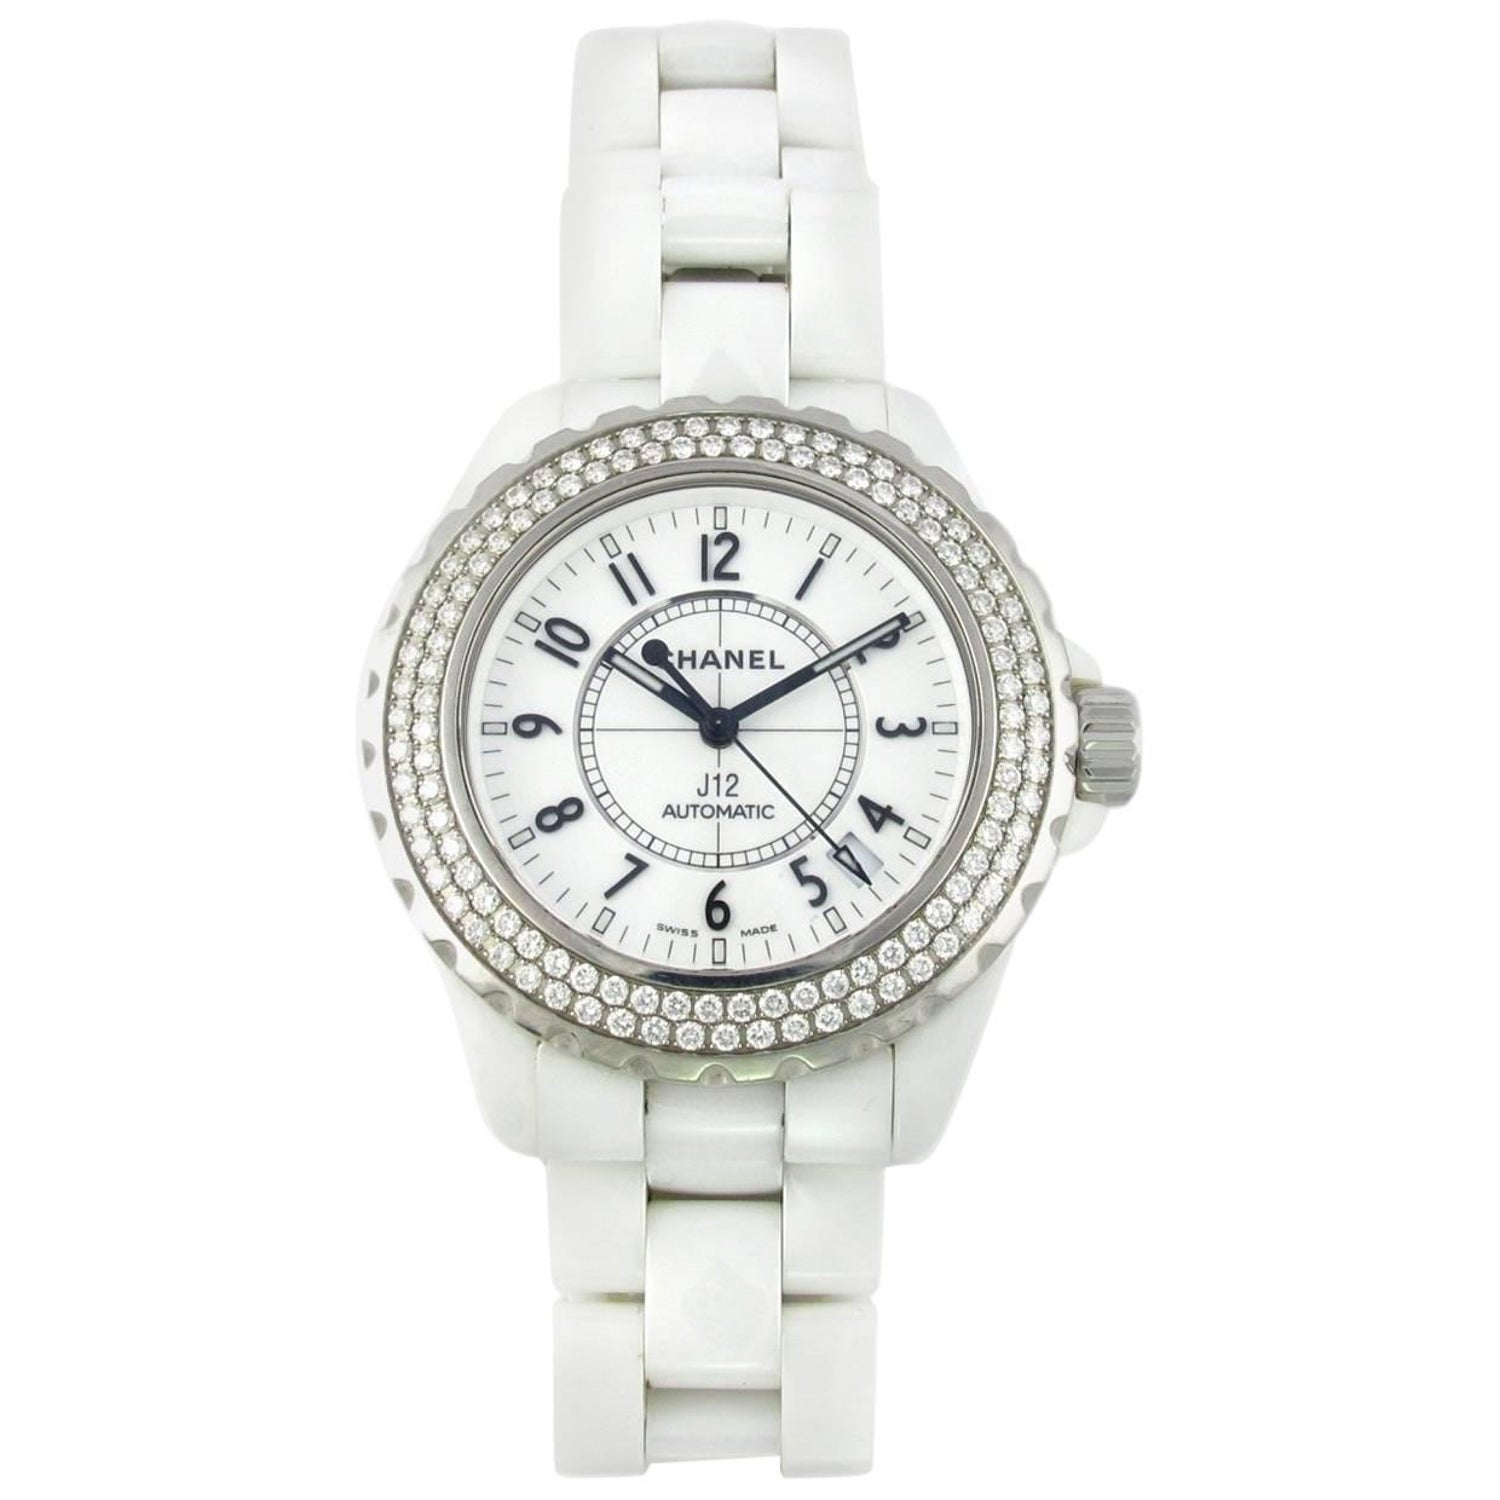 4005118d00d Chanel White Ceramic Diamond Large J12 Automatic Wristwatch at 1stdibs